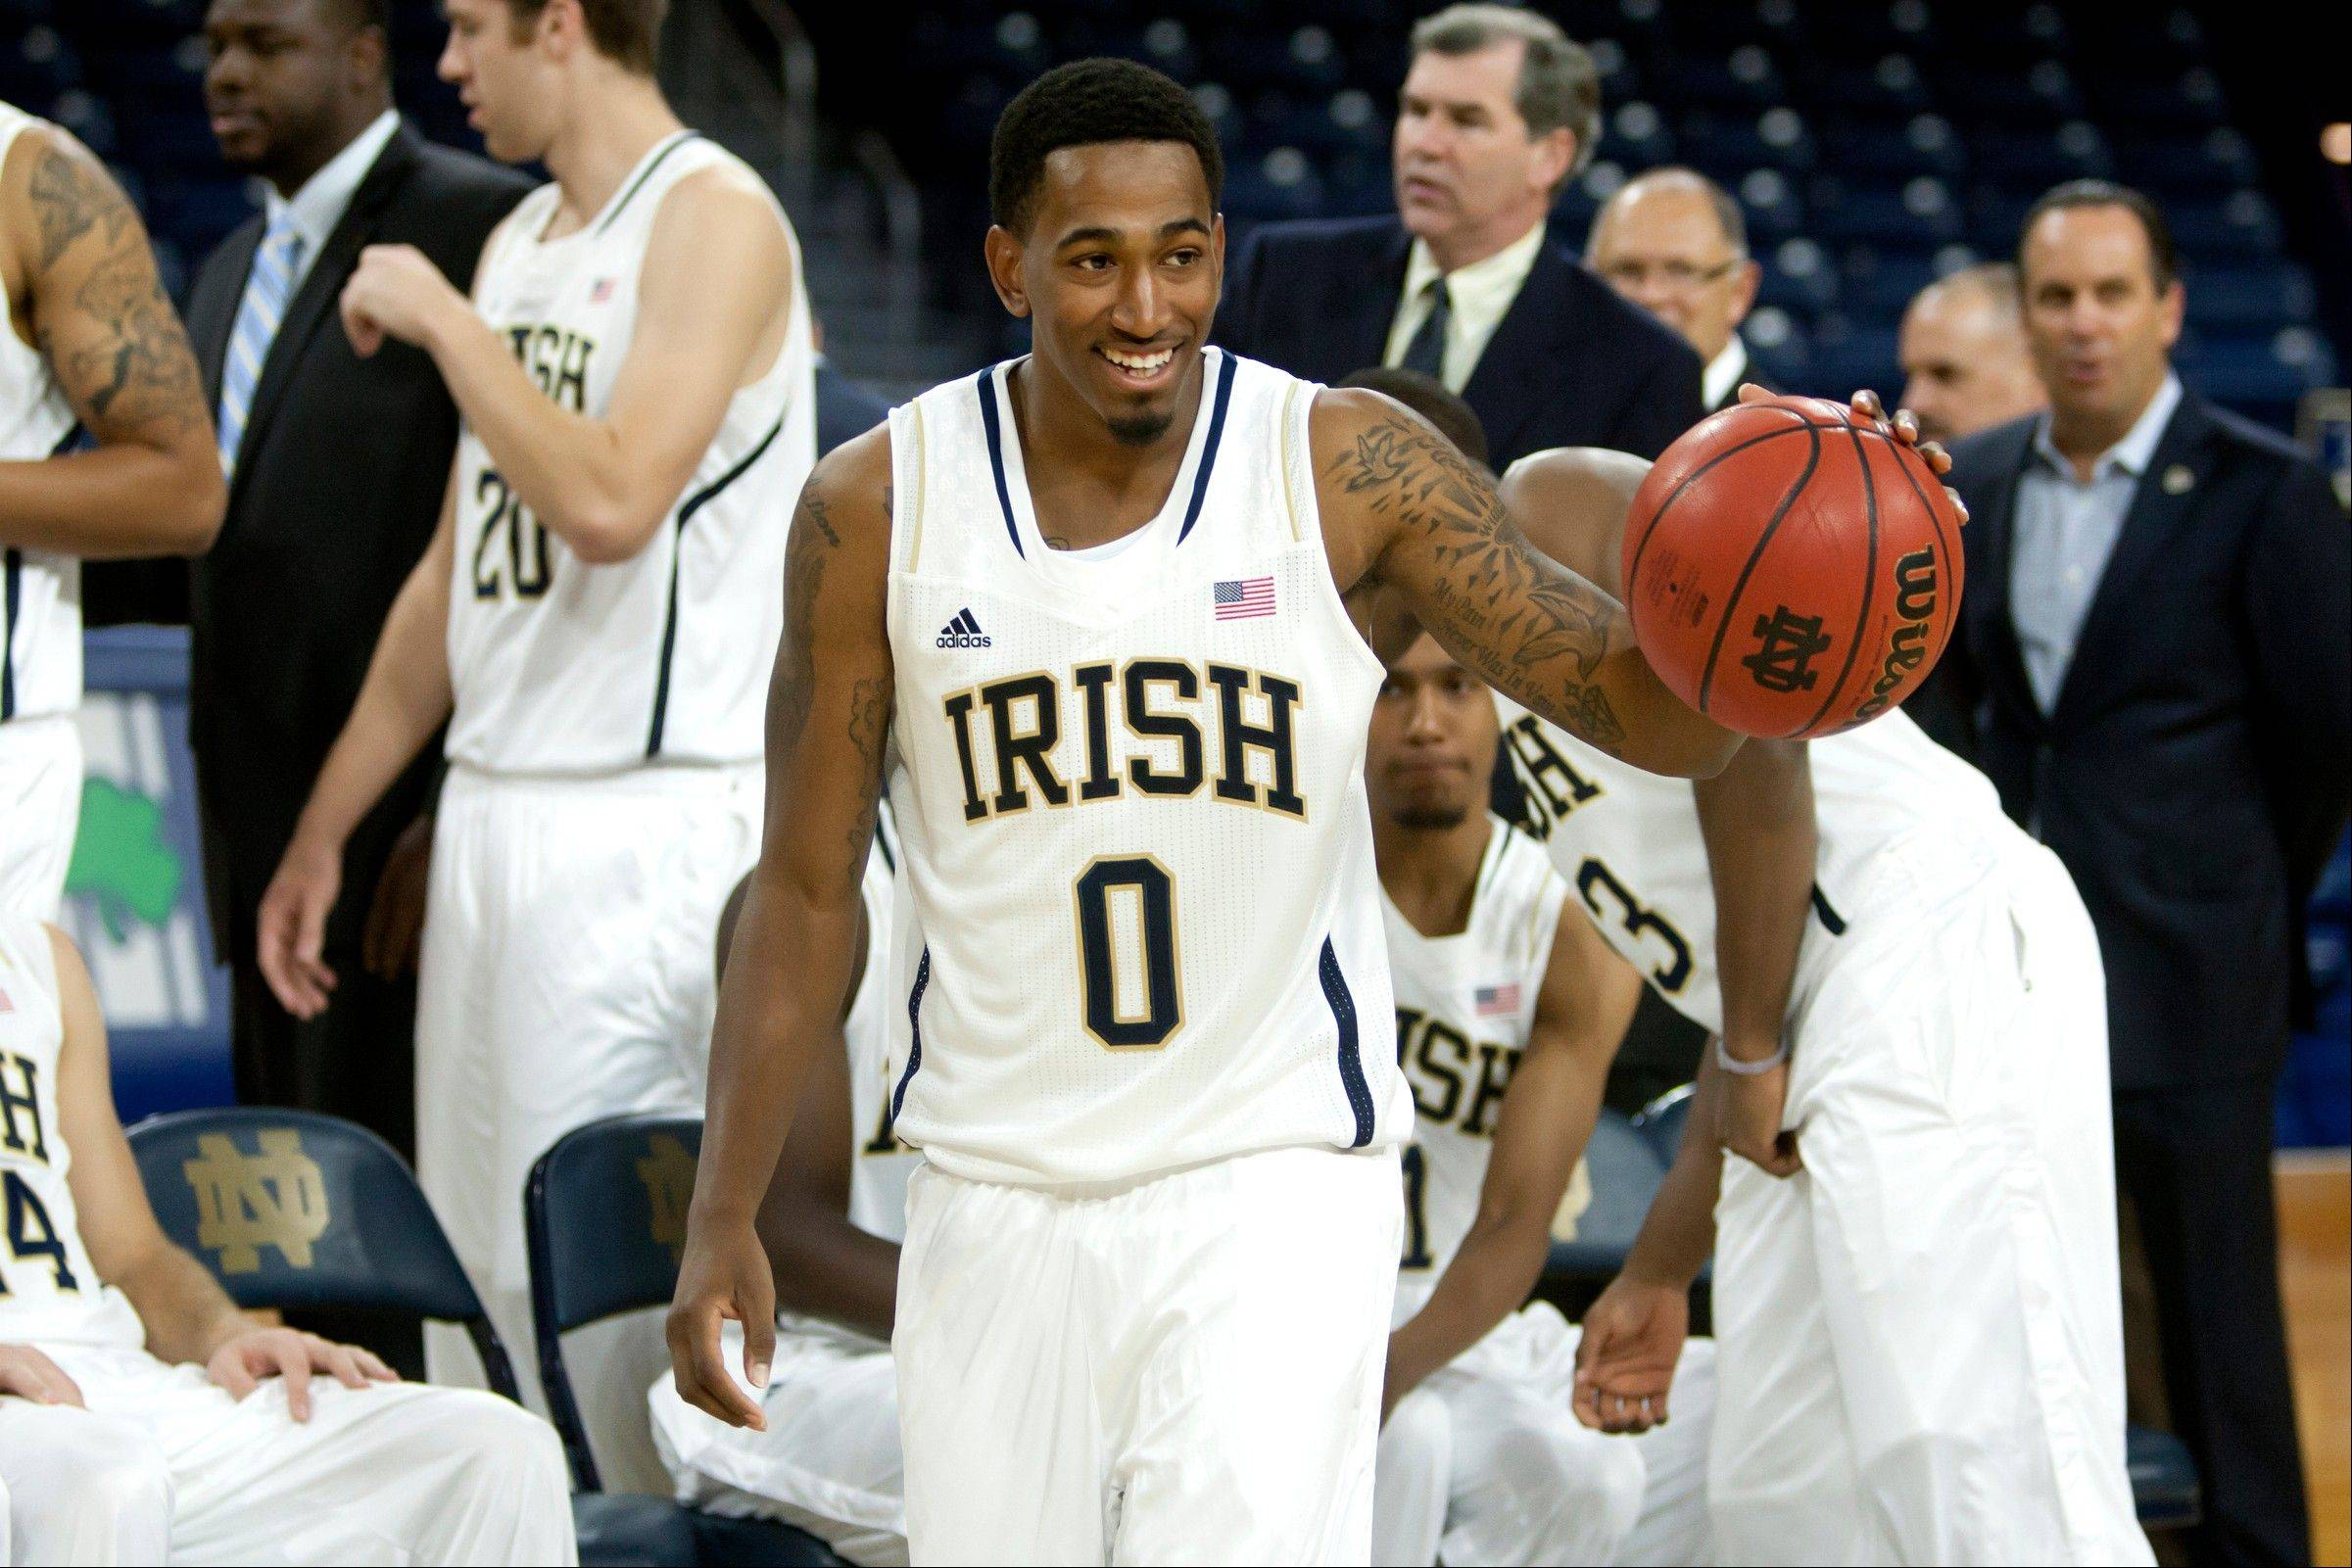 Notre Dame guard Eric Atkins dribbles after an official photograph during the team�s media day on Wednesday in South Bend, Ind.